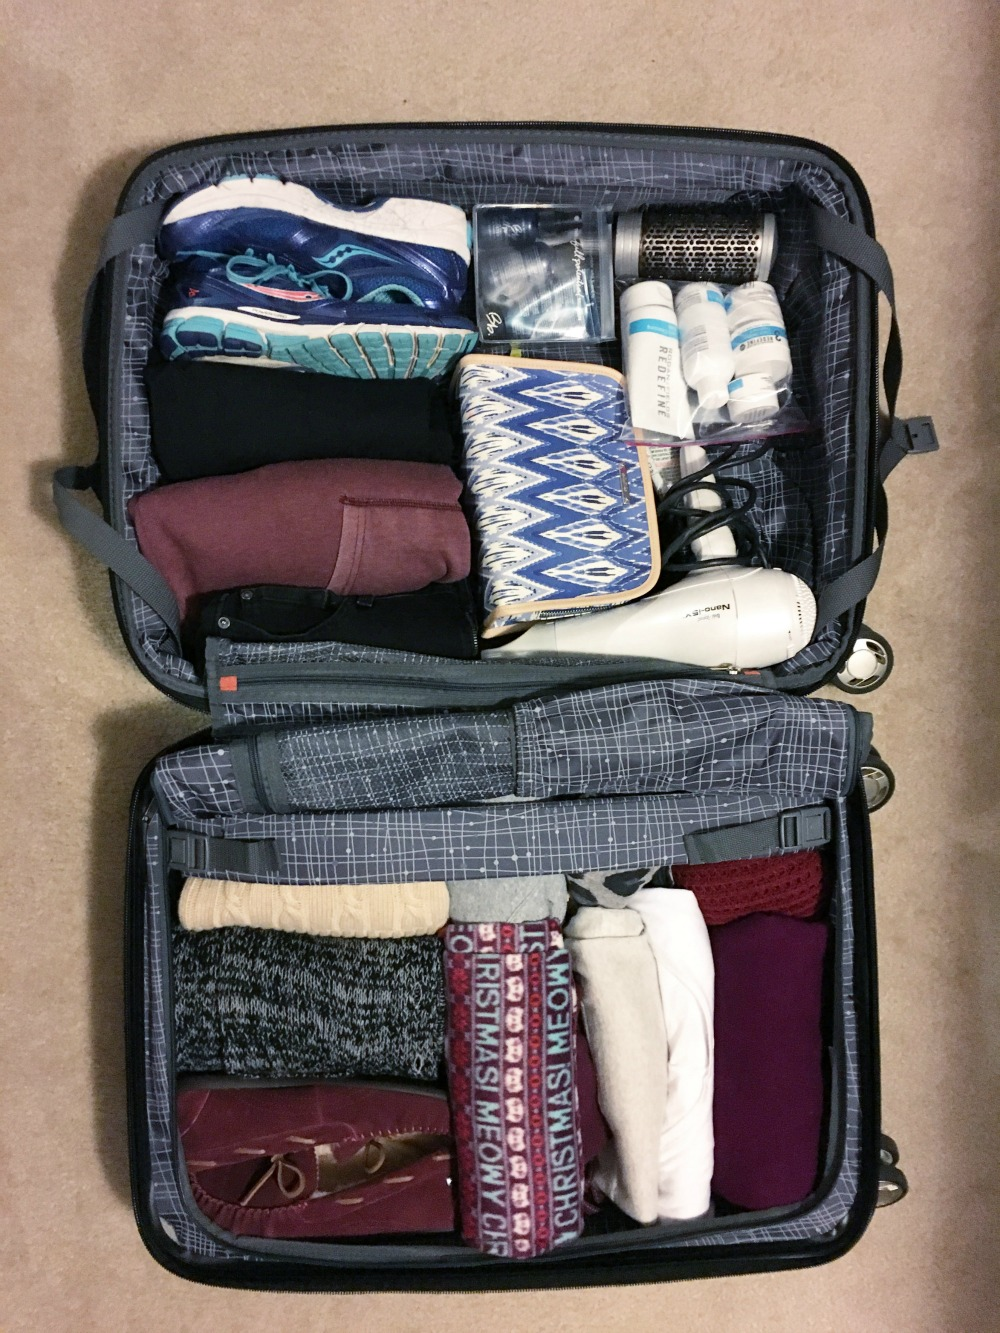 Packing for a Winter Vacation